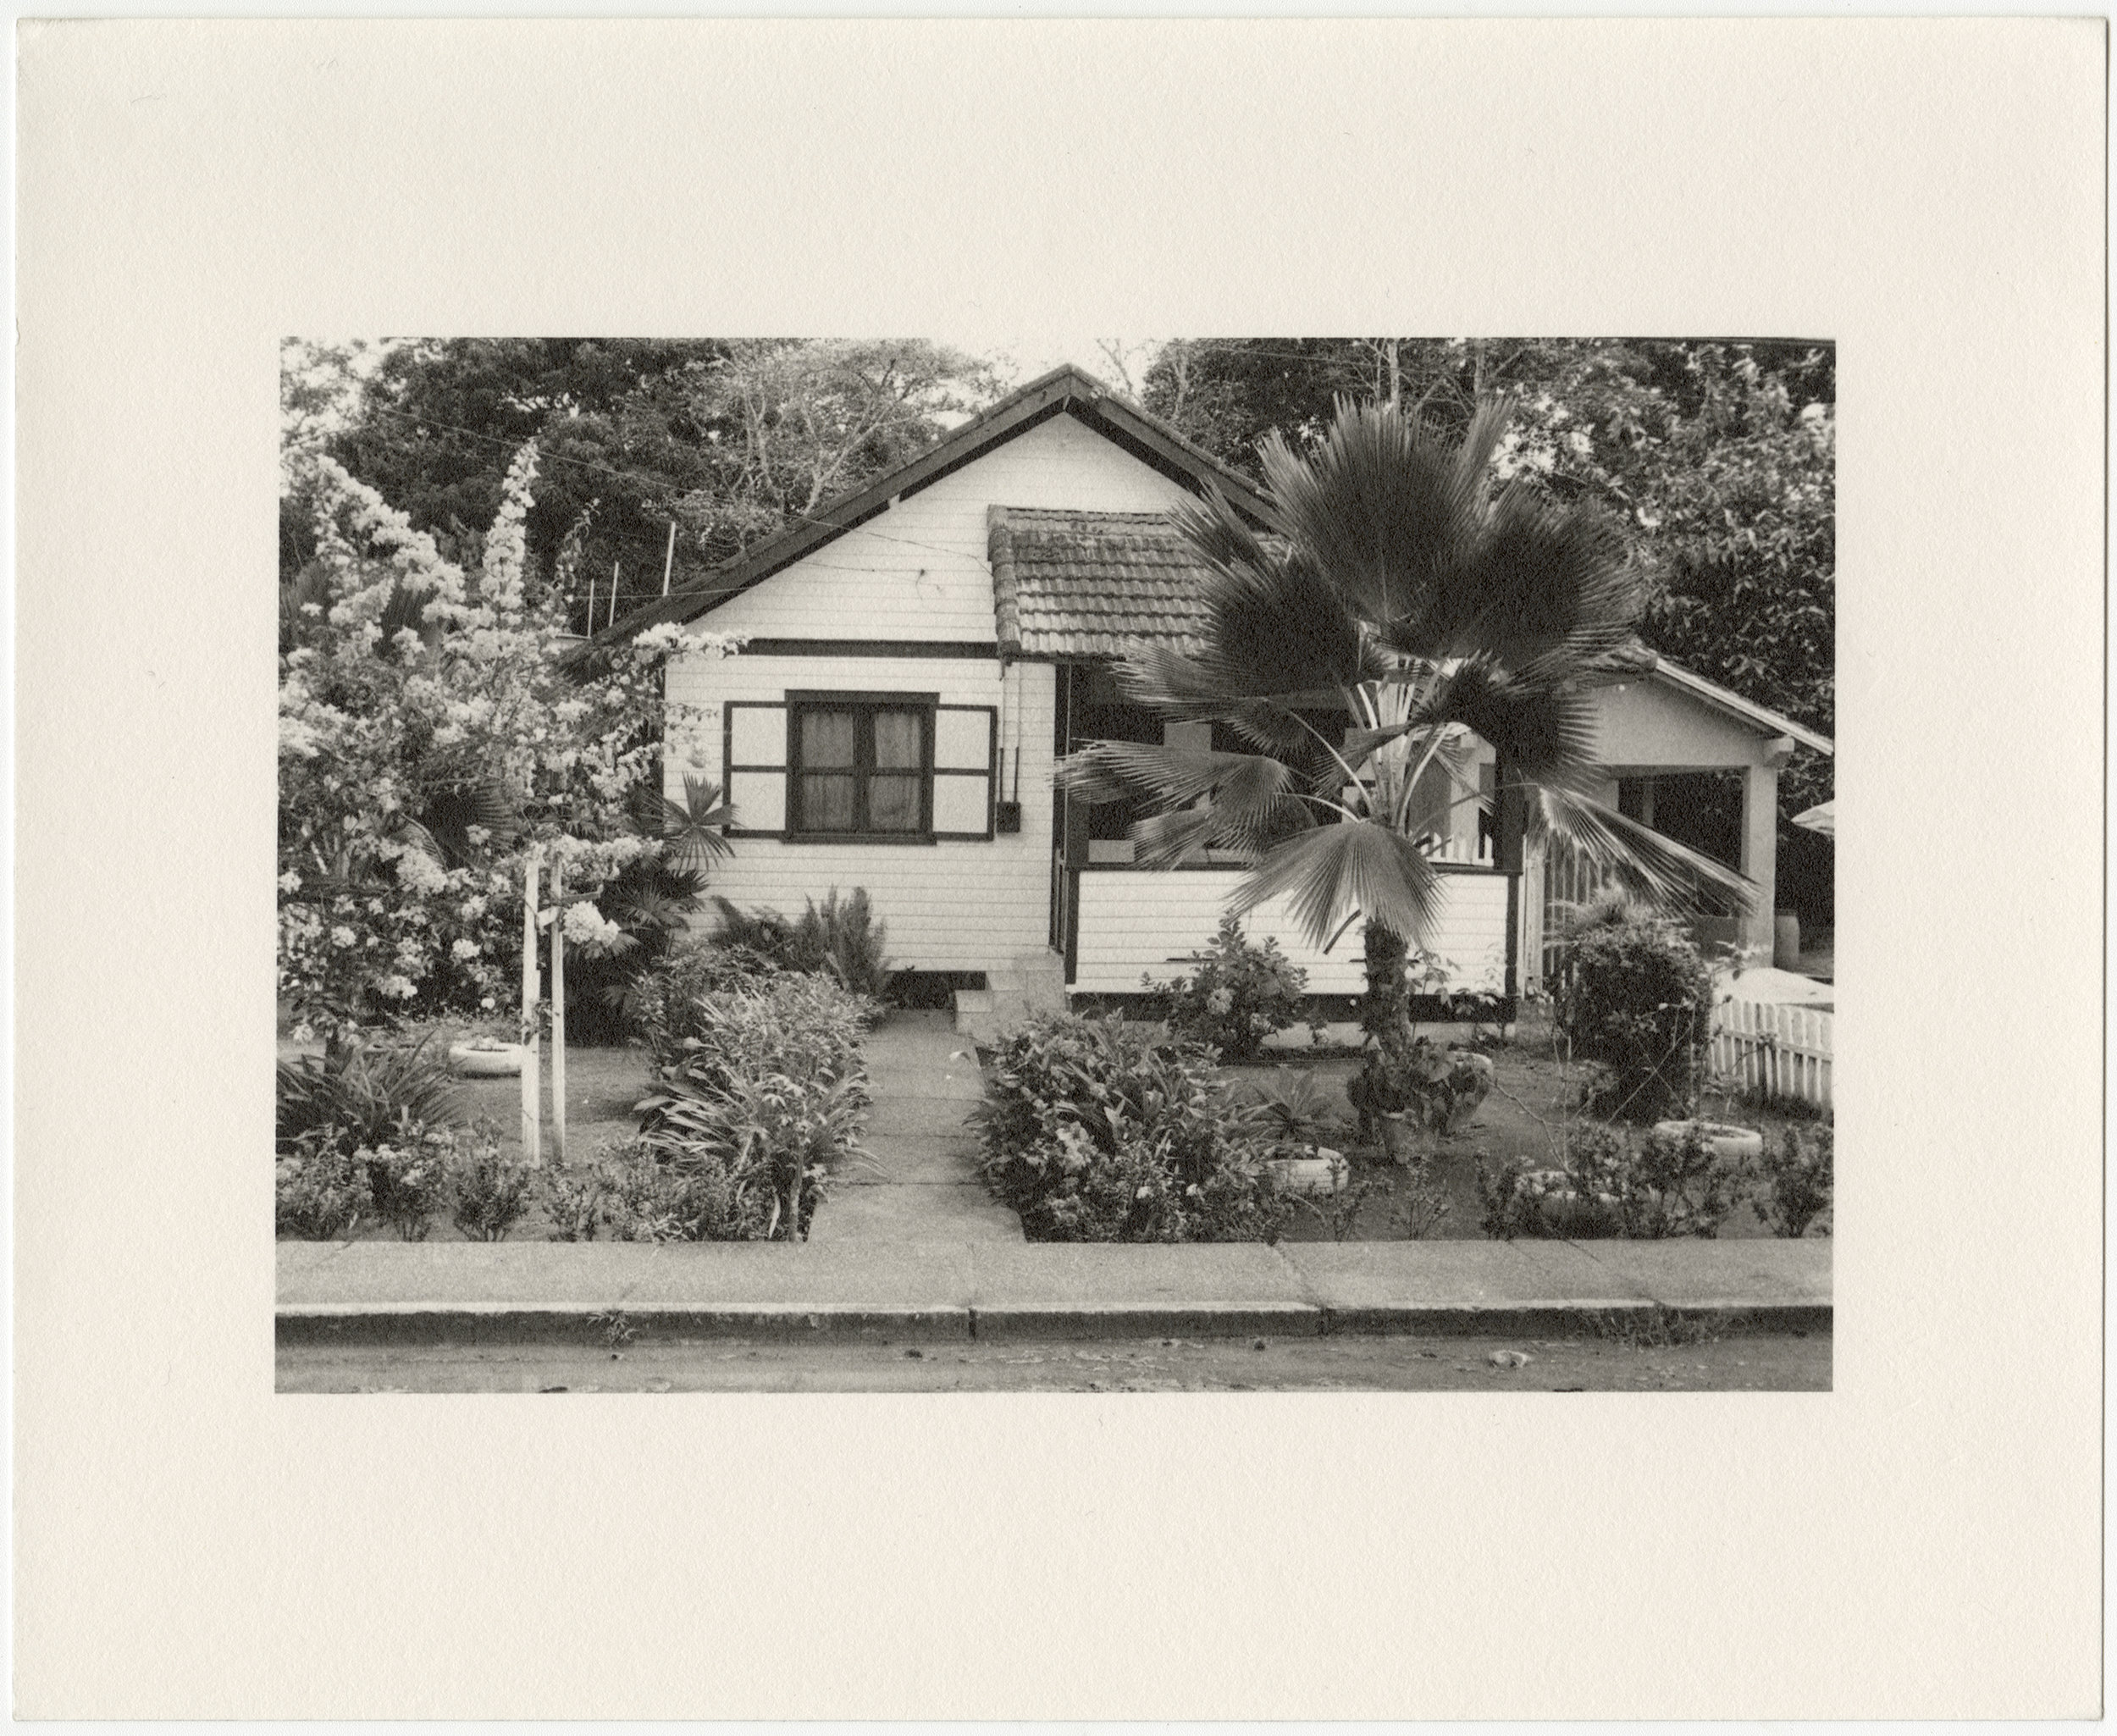 """Belterra employee house with palm tree, built in 1934 by the Companhia Ford Industrial Do Brasil Ford Motor Company. 2014 Belterra, Pará, Brazil. Gelatin silver fiber print, 8"""" x 10"""", 2018"""